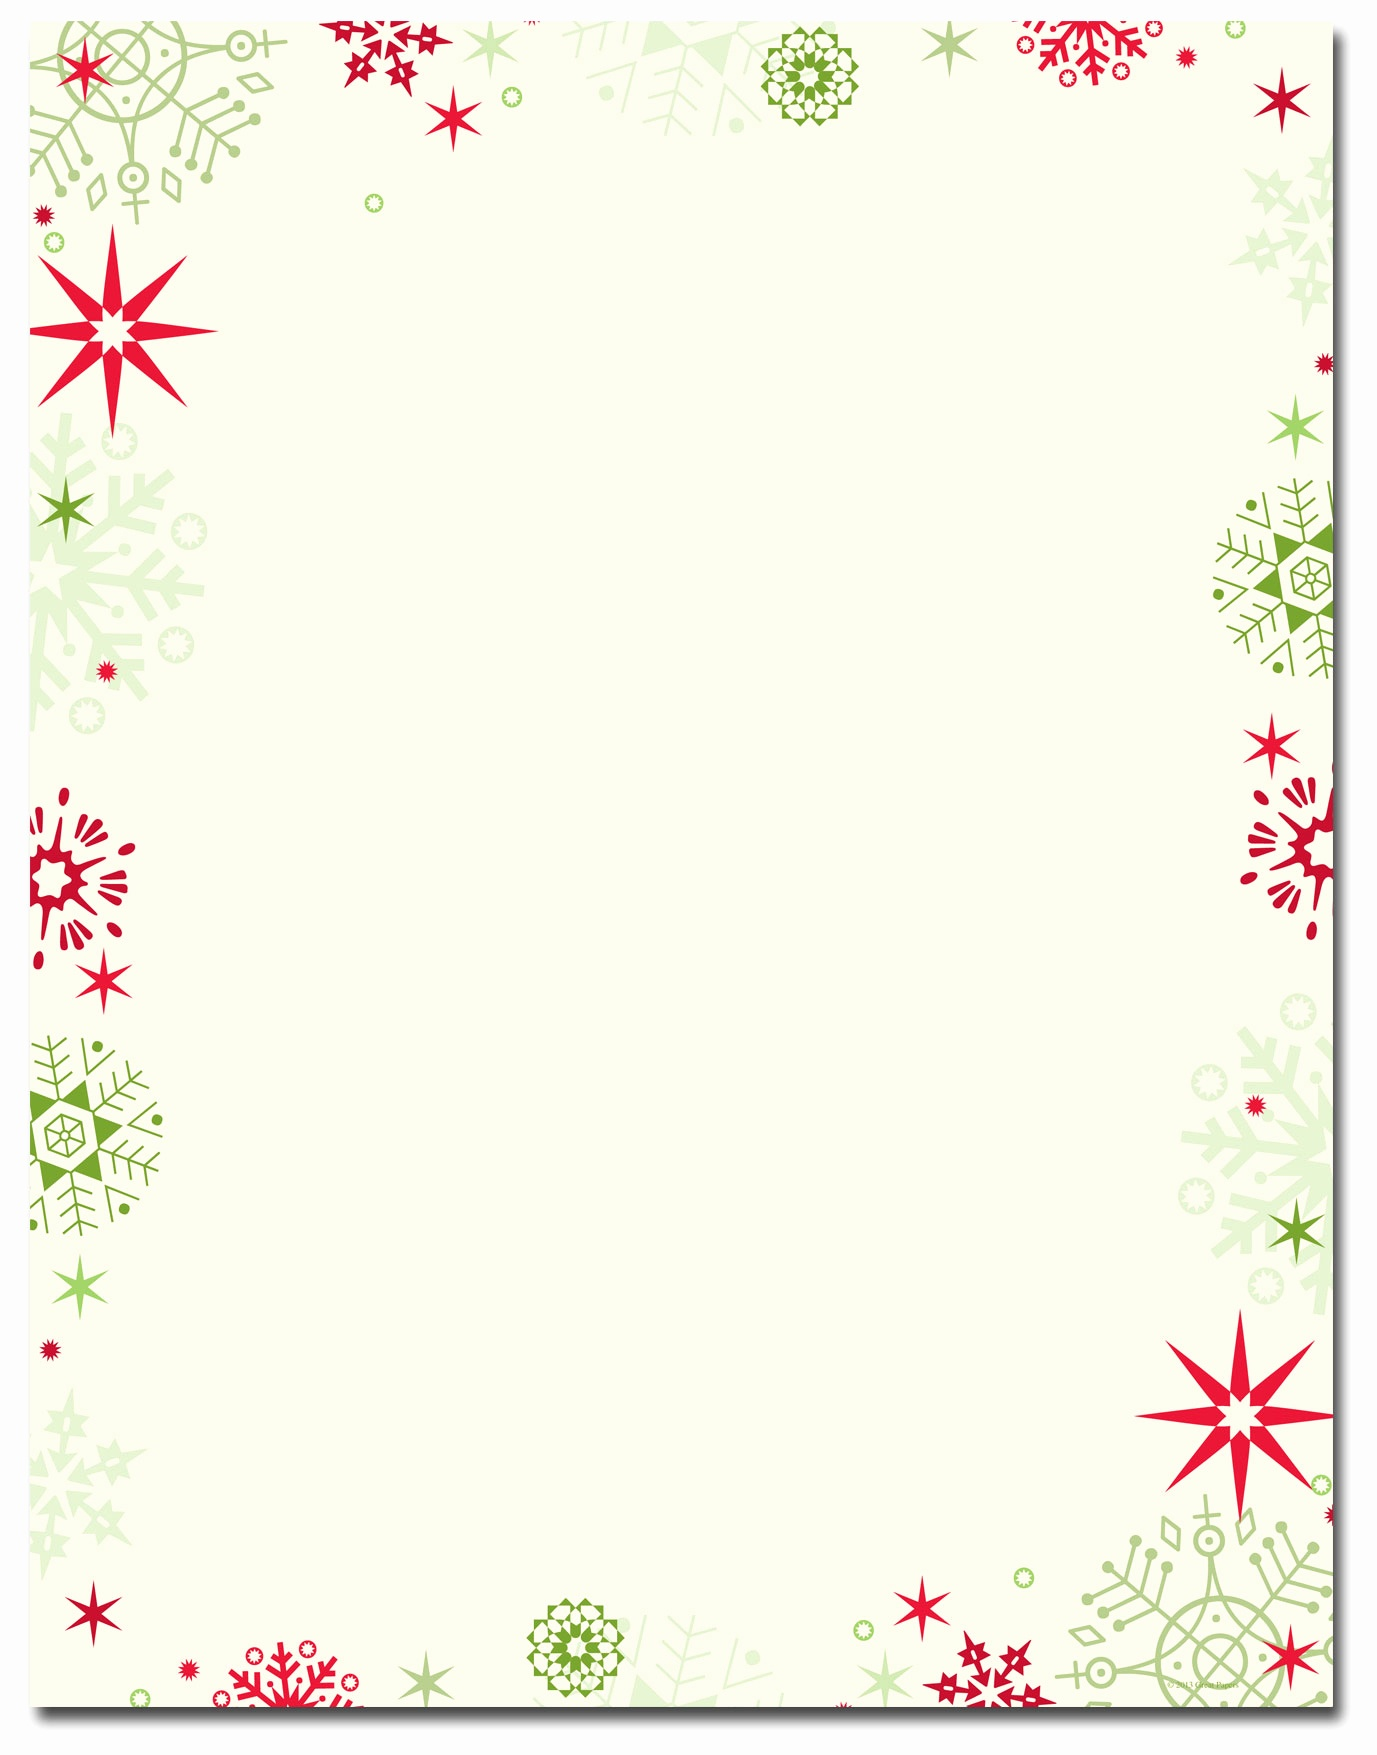 Free Religious Christmas Letterhead The Image Shop Stationery - Free Printable Christmas Paper With Borders